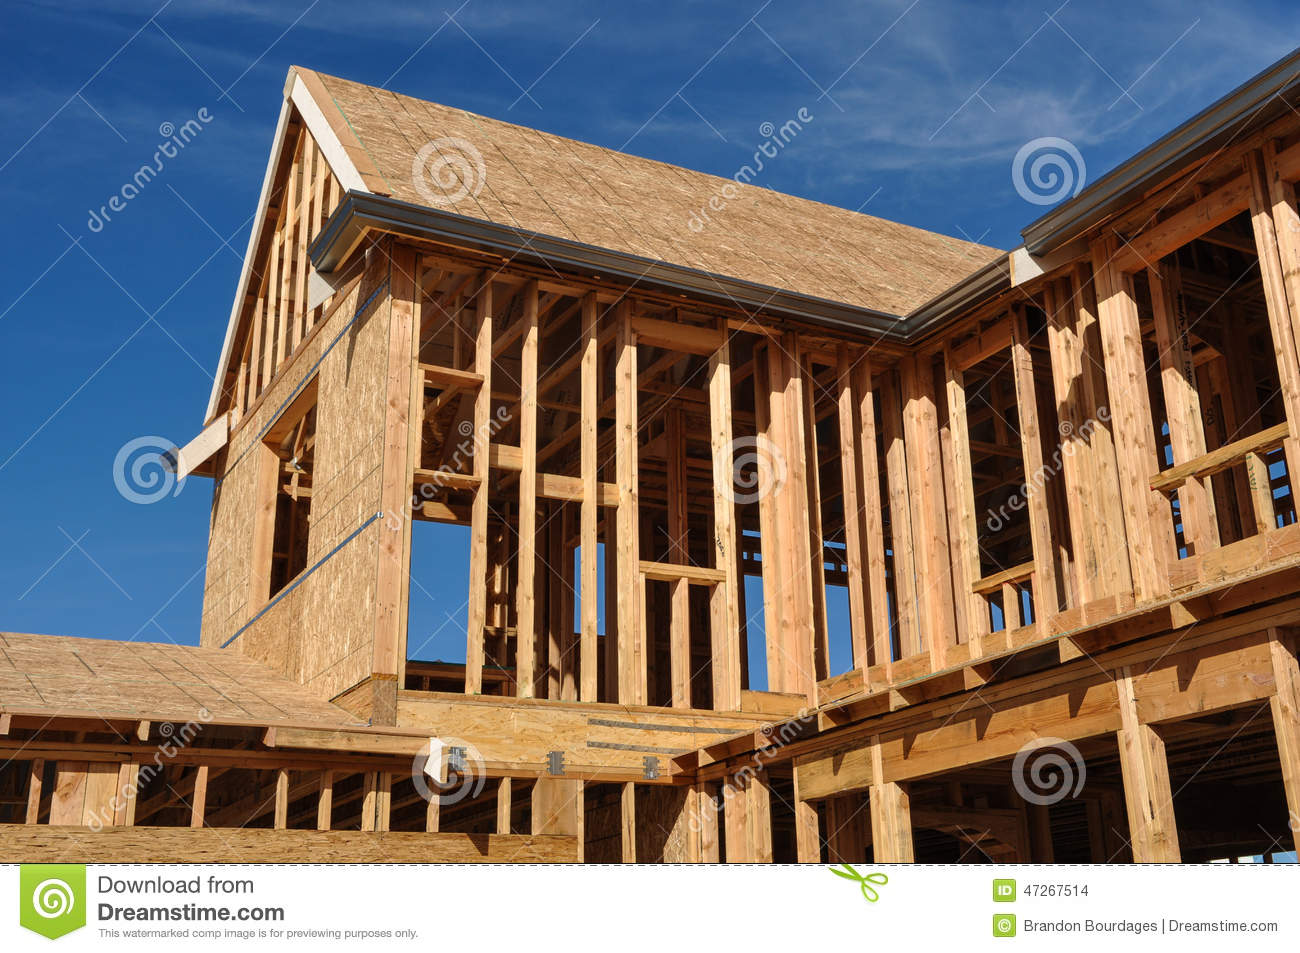 New Home Under Construction Stock Photo - Image: 47267514